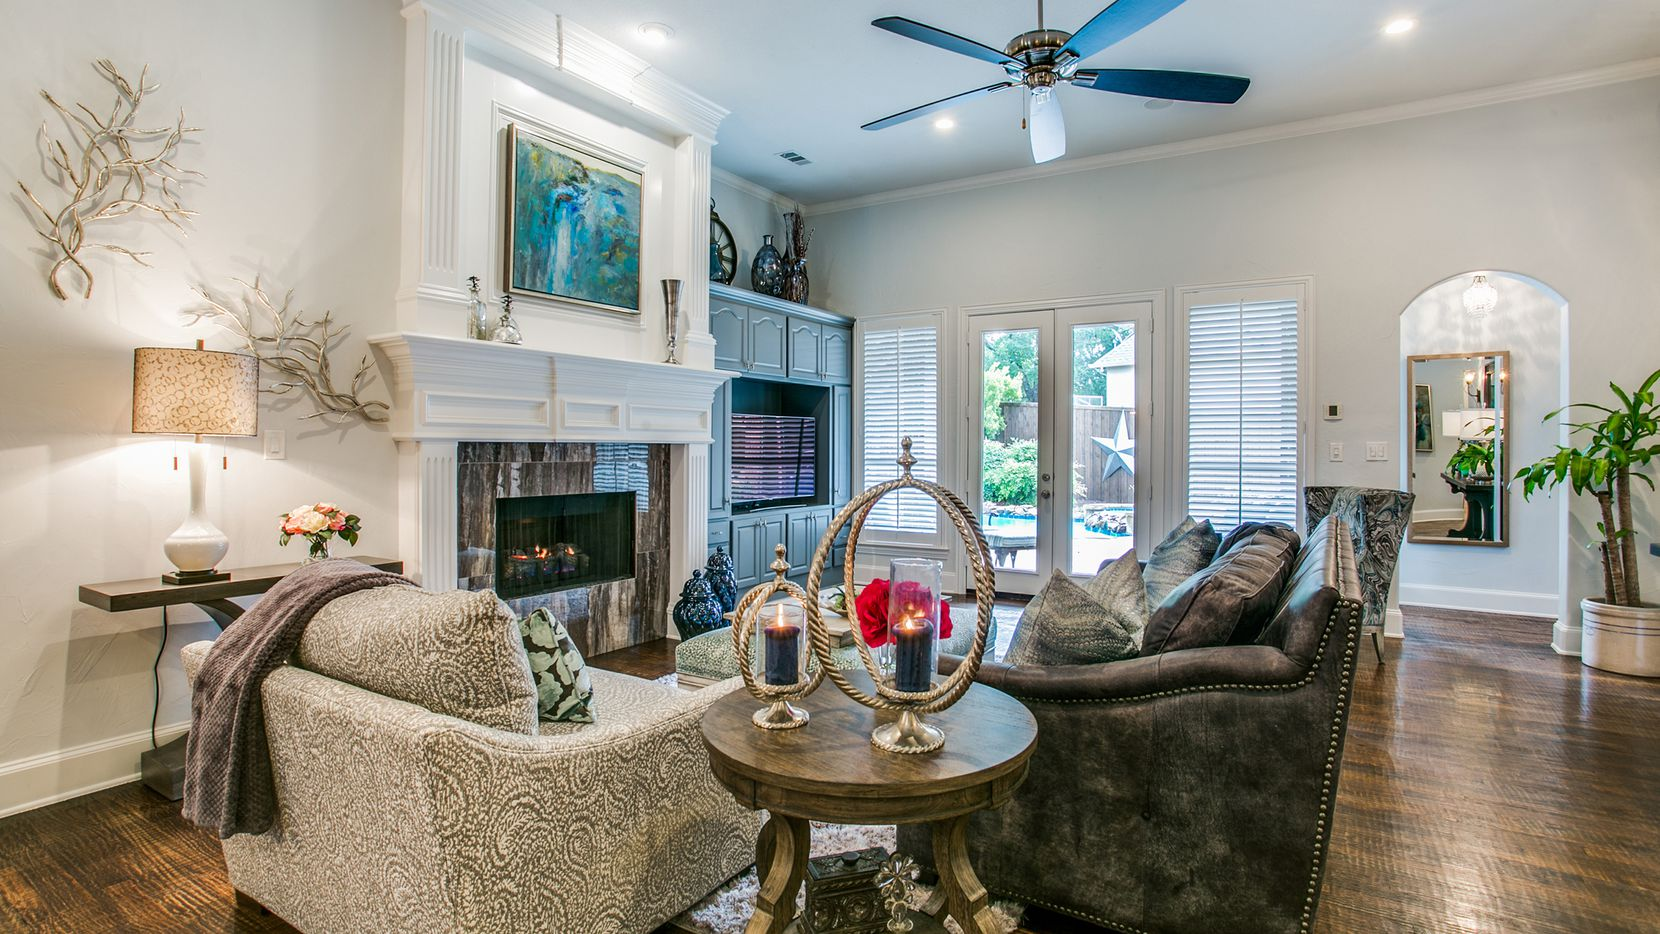 Tour the updated home at 6805 Cannon Falls Drive in Plano from 2 to 4 p.m. on Nov. 10. It is listed for $679,000.